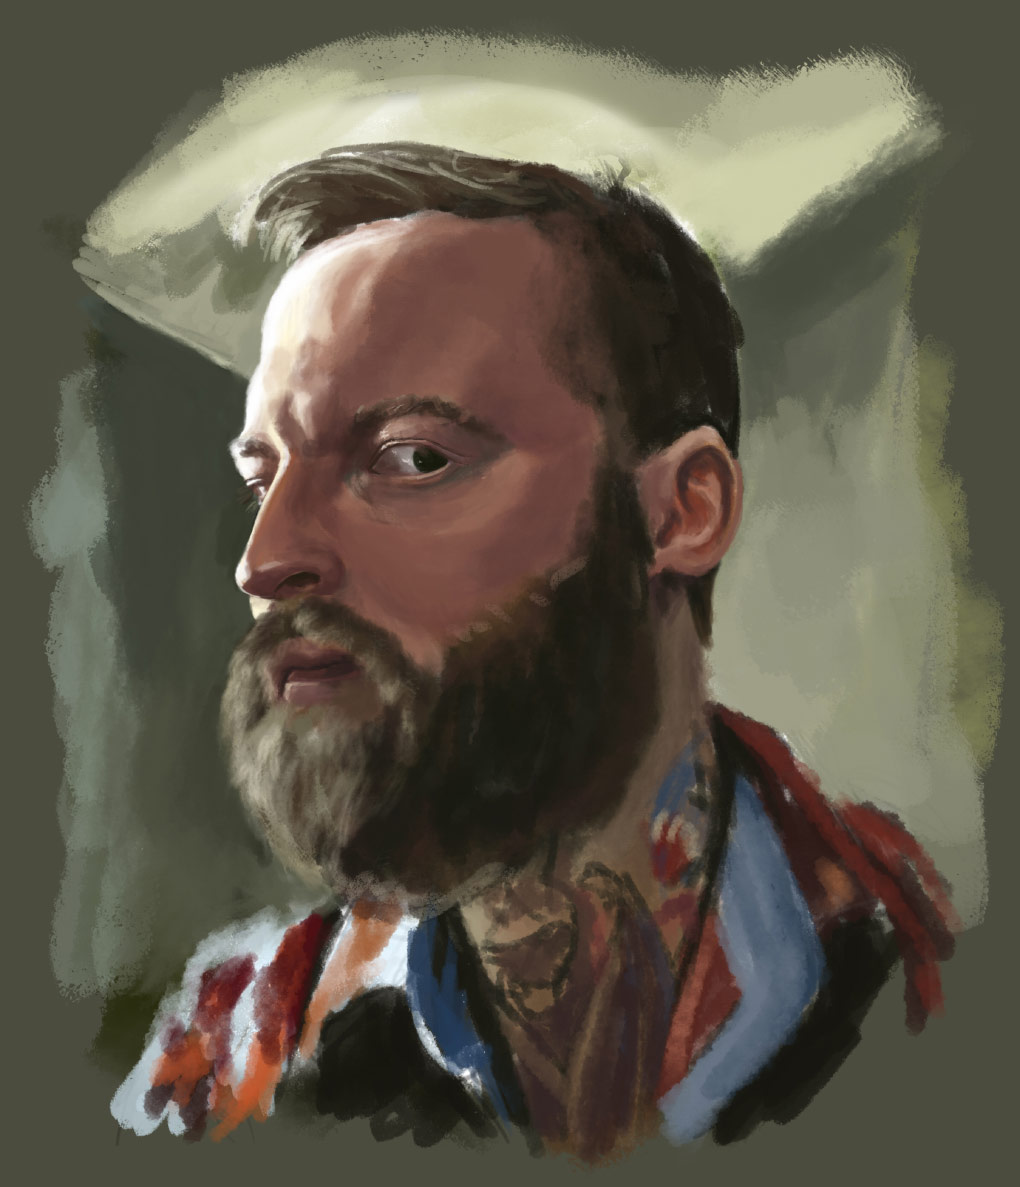 Painted by Andy Barrett in Photoshop using GrutBrushes Oil Paints